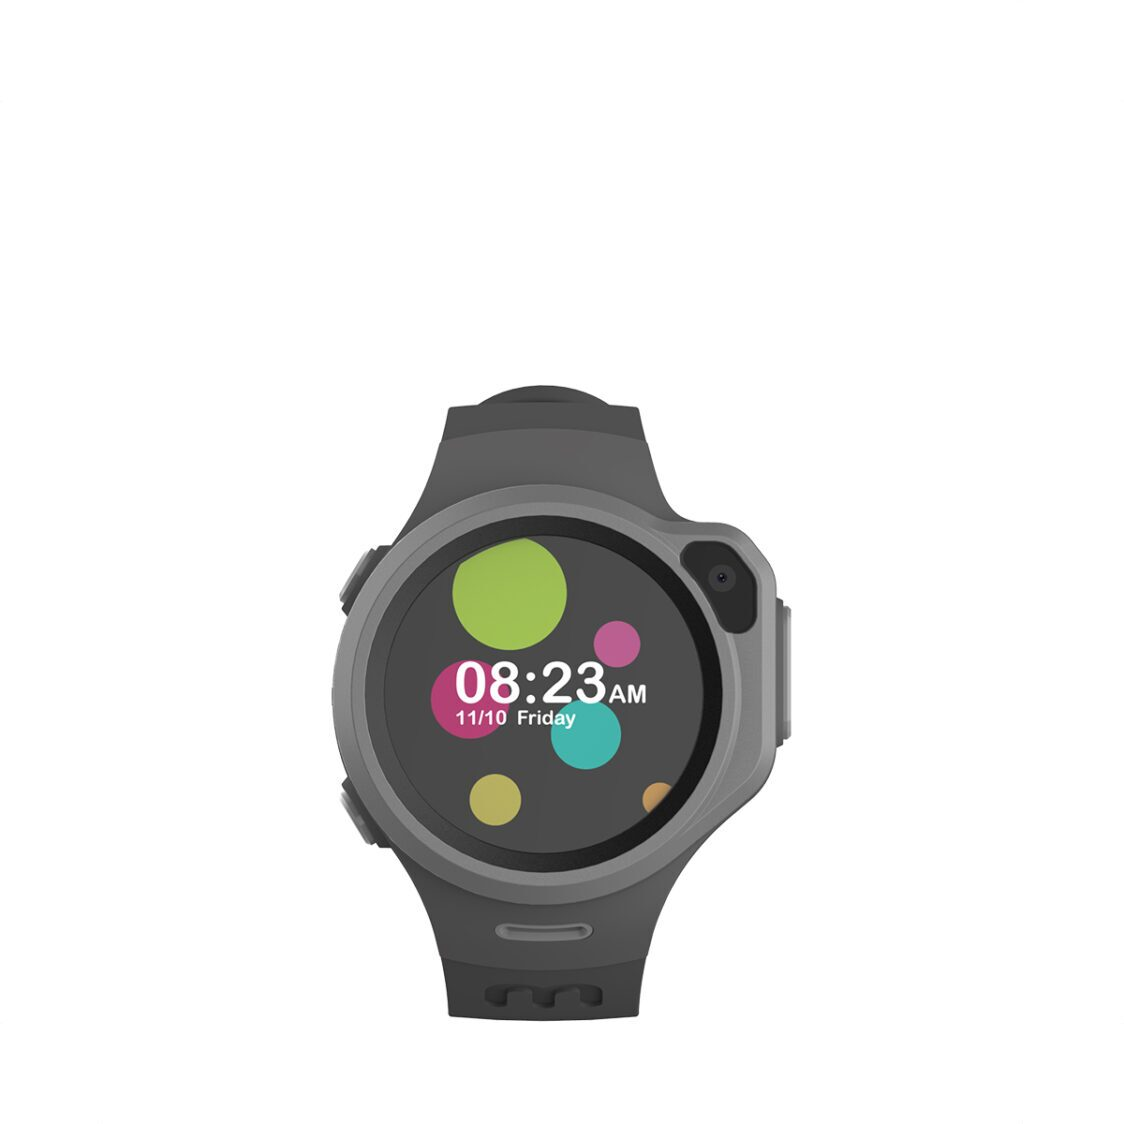 myFirst Fone R1 4G GPS Music Player Watchphone With Video Call and Voice Call